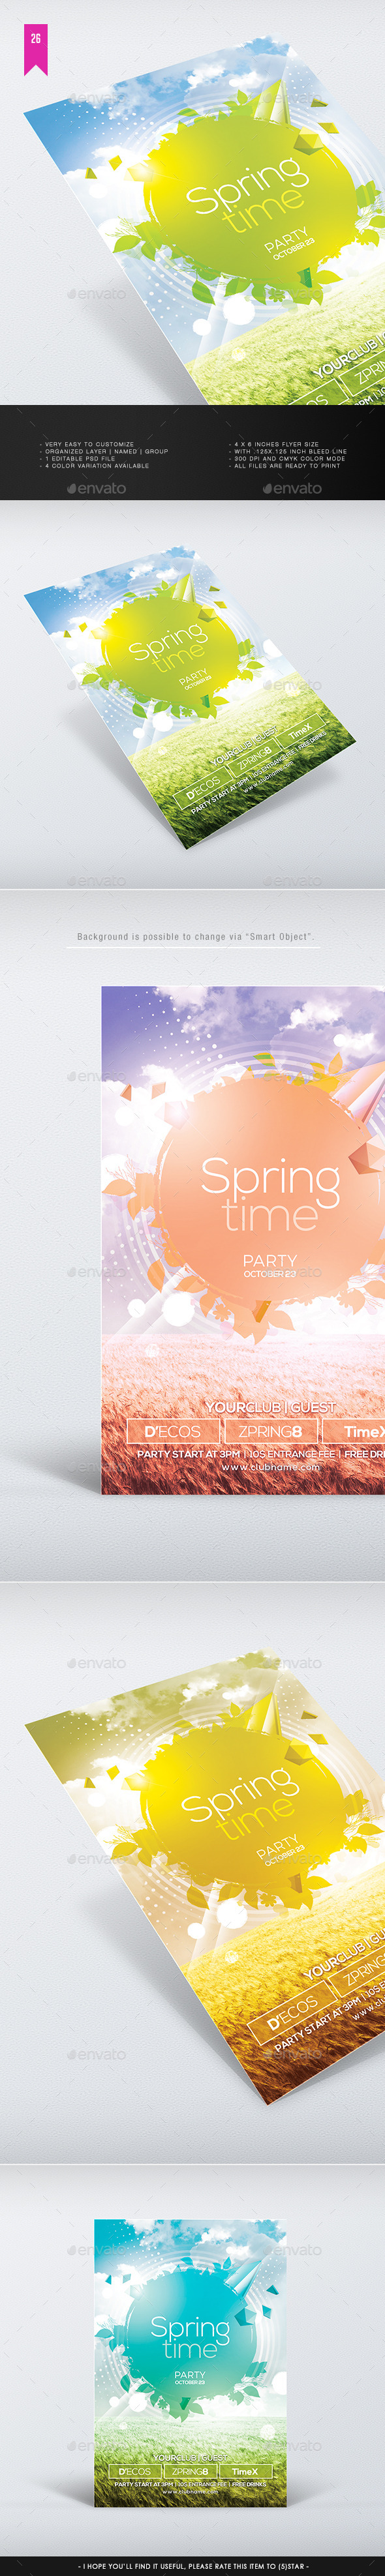 Spring Time V.2 - Flyer Template - Clubs & Parties Events